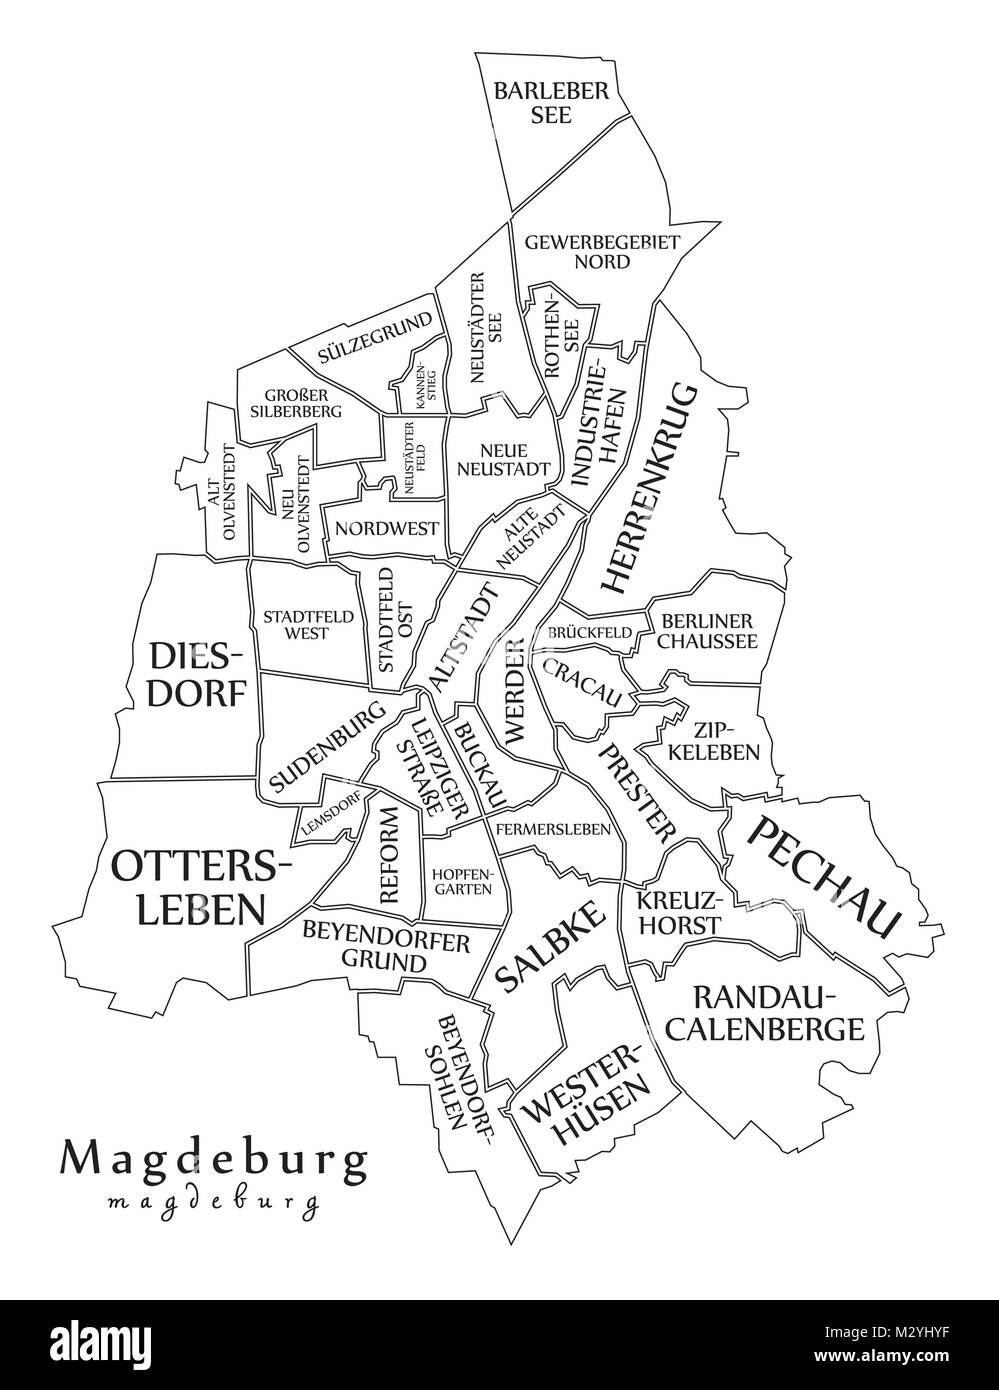 Modern City Map Magdeburg City Of Germany With Boroughs And Titles